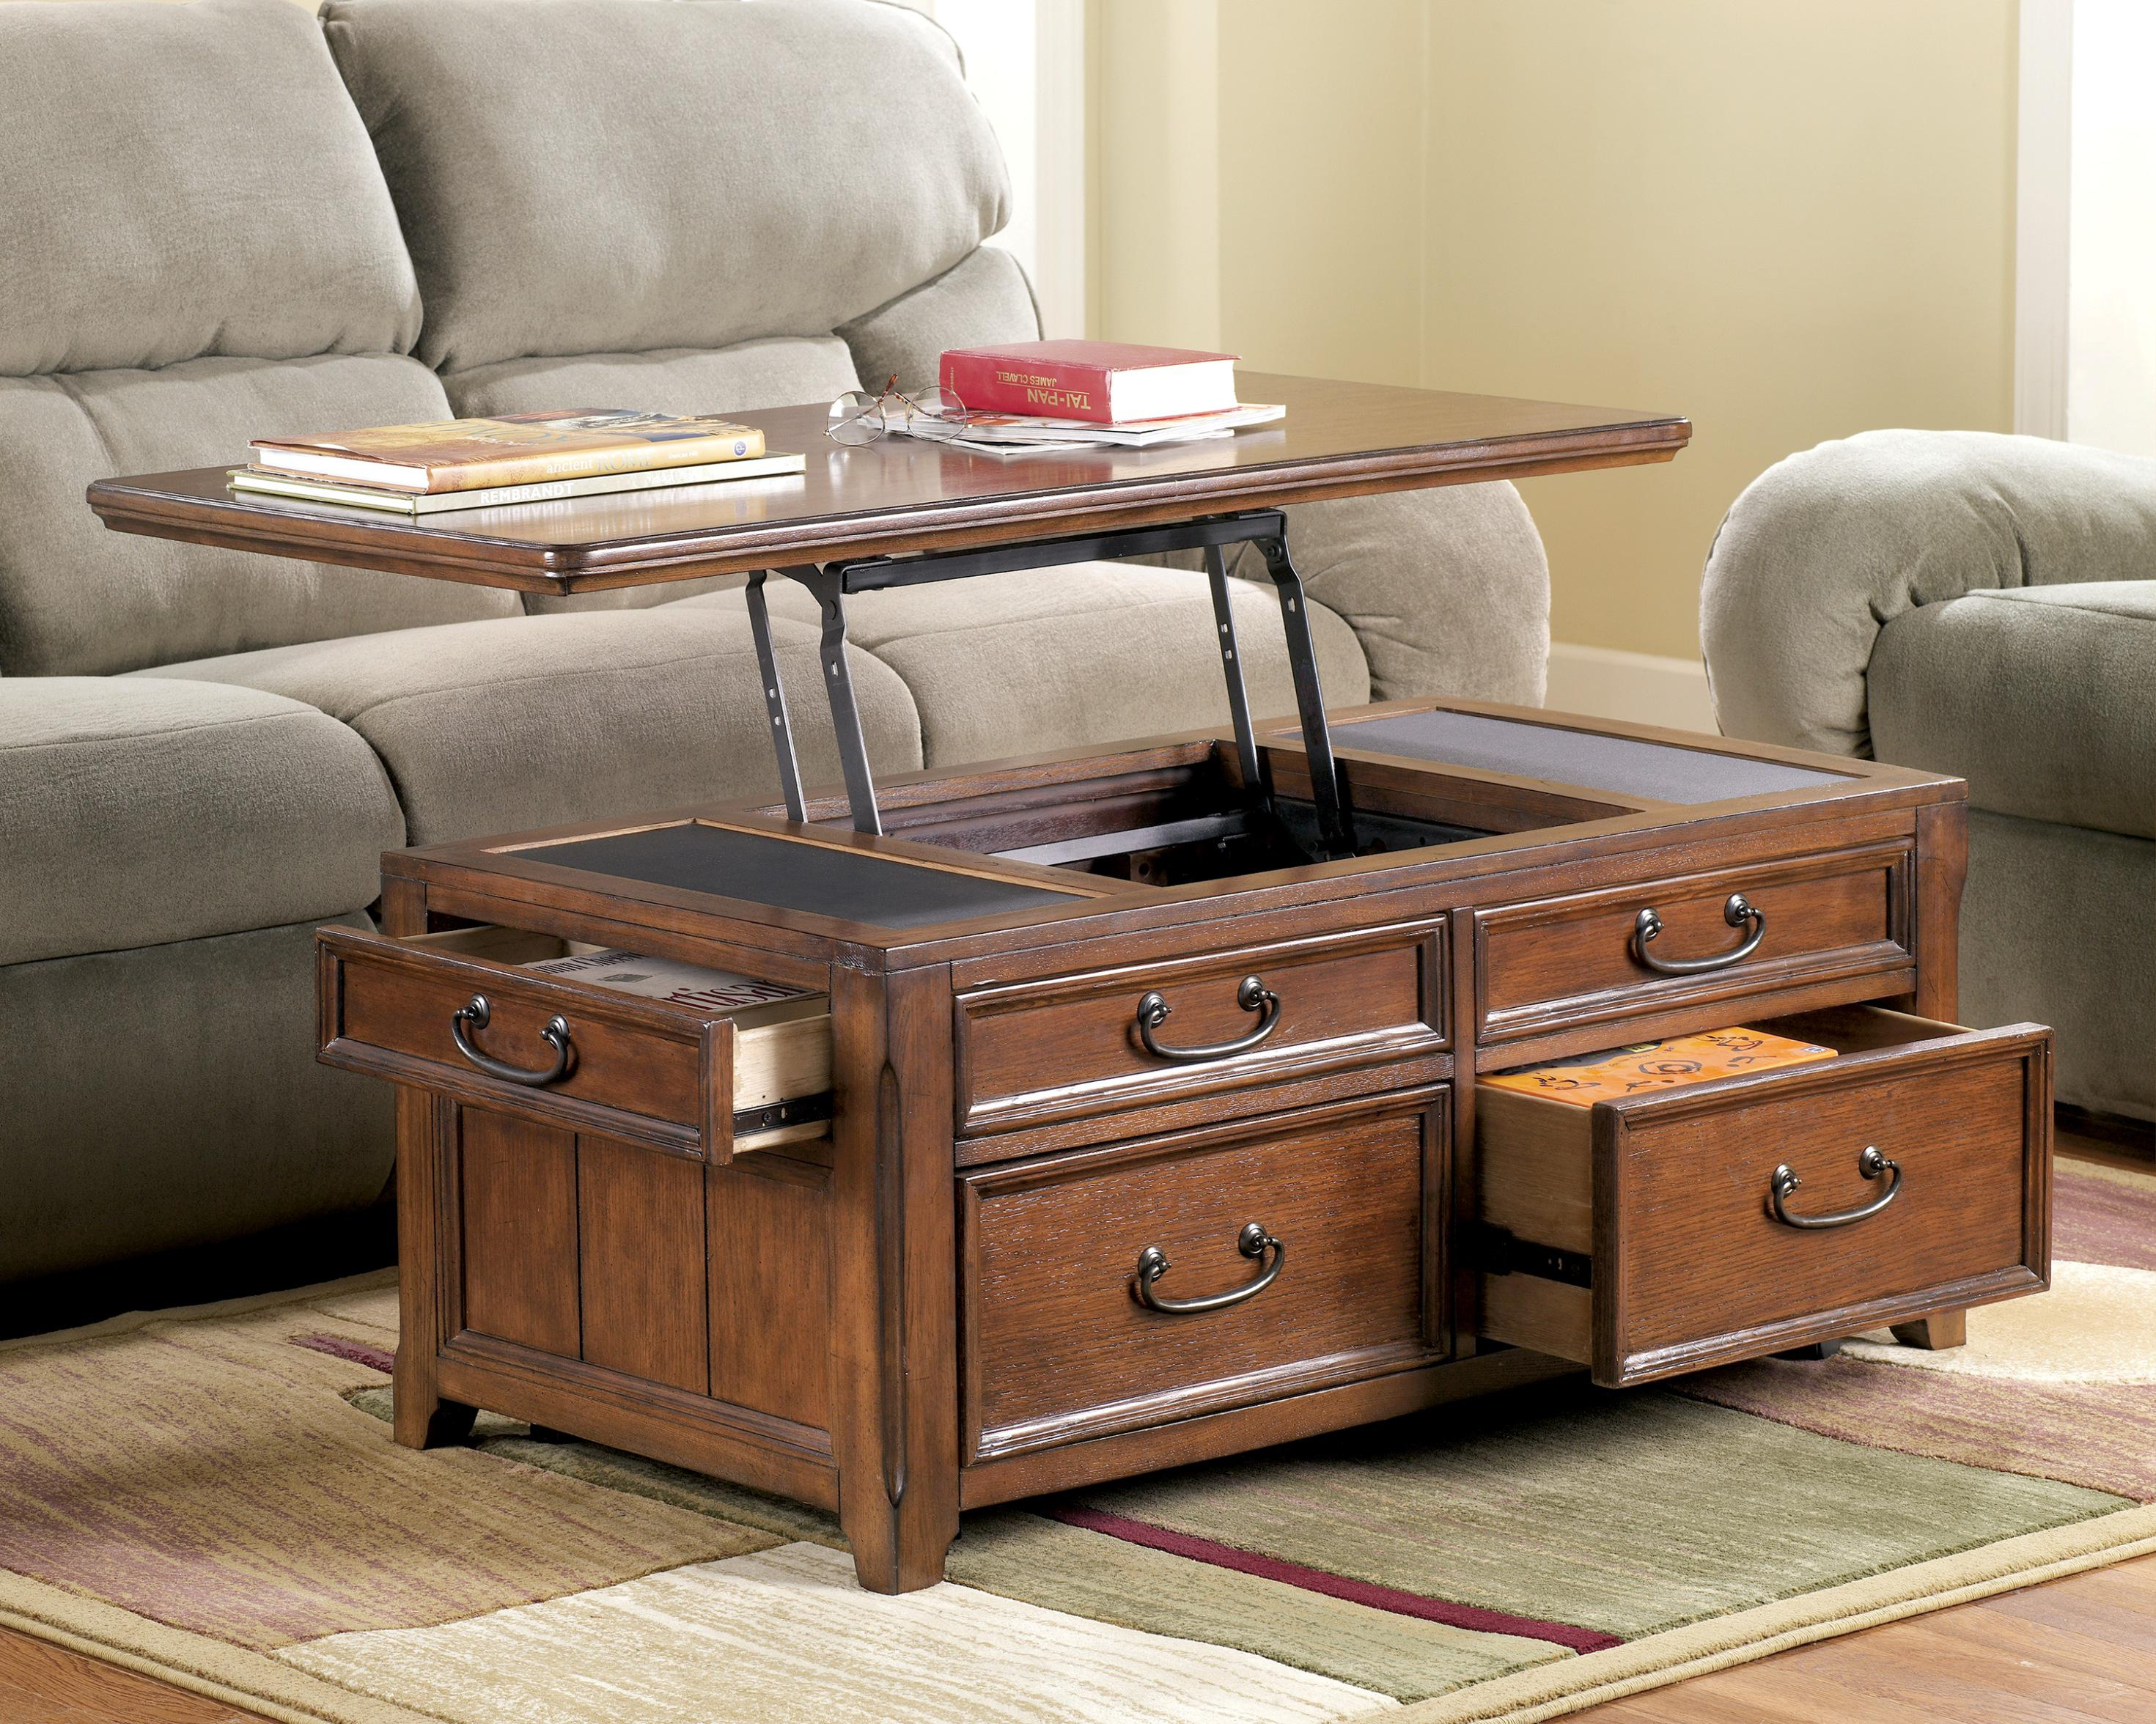 Breathtaking trunk coffee table with sofa and rugs for classic home furniture with storage trunk coffee table